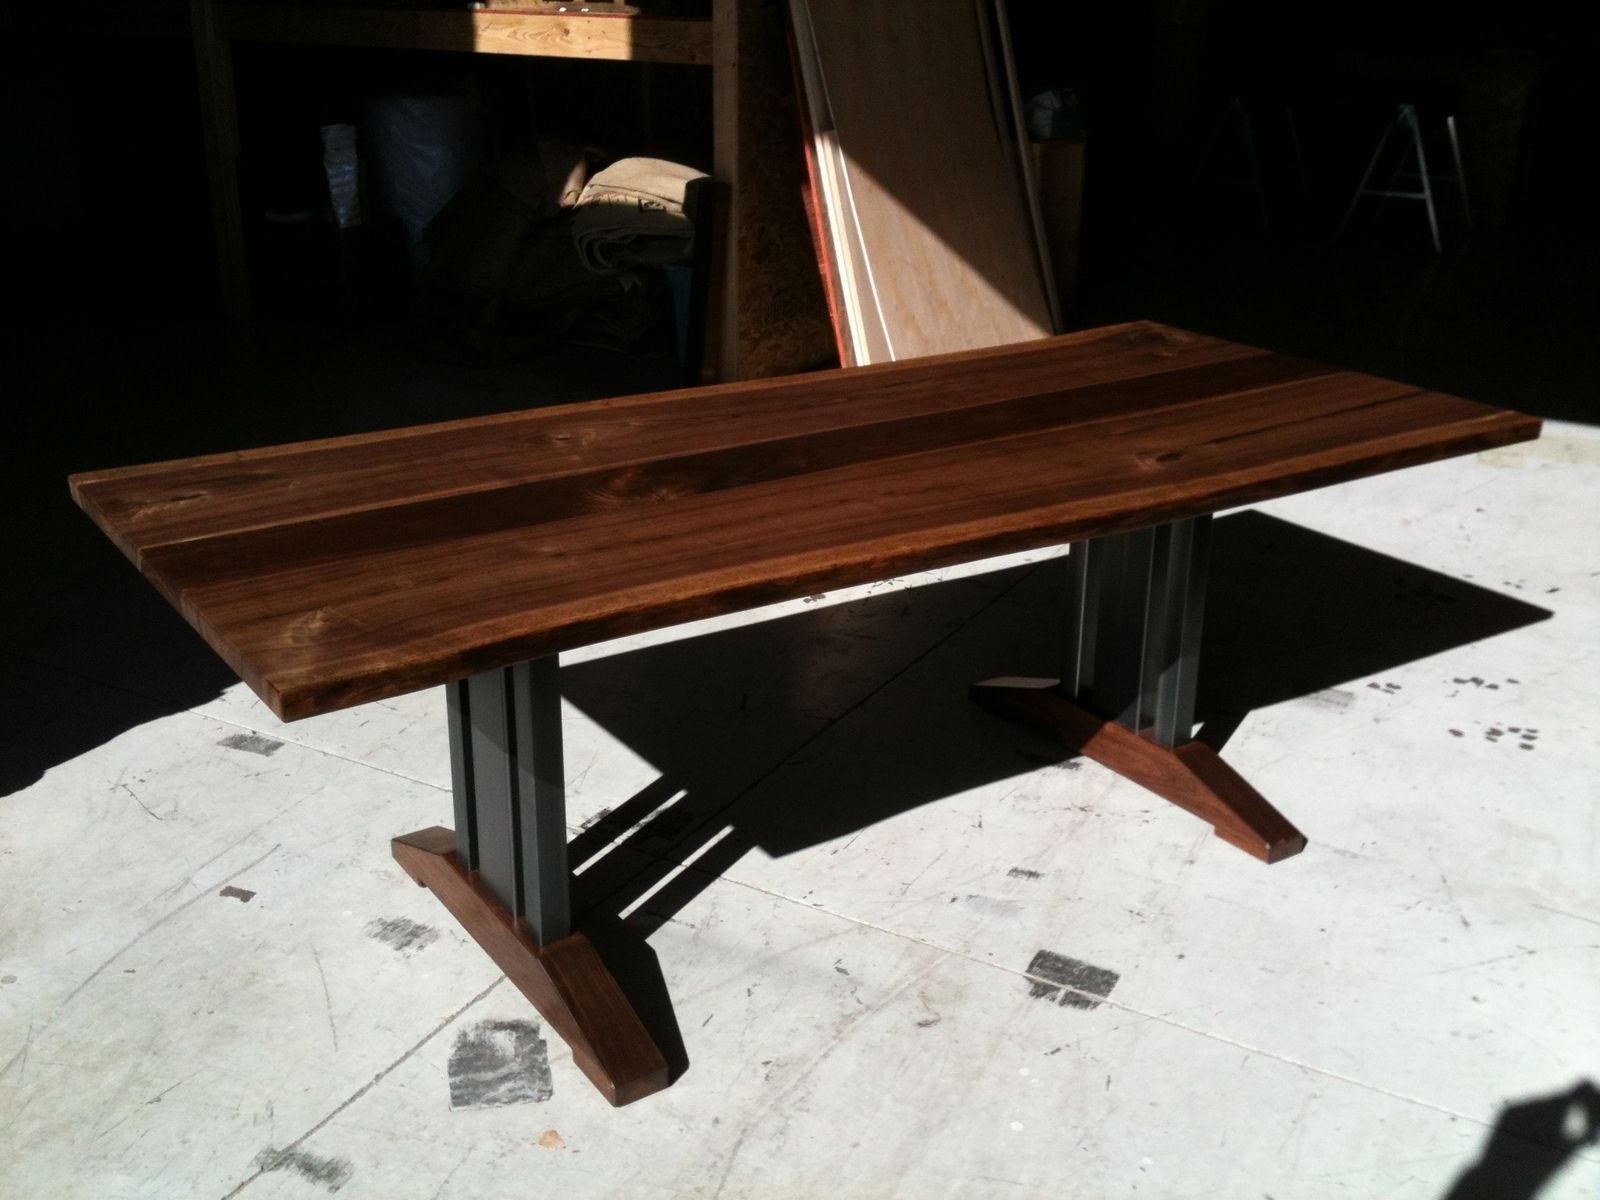 Walnut live edge dining table - Live Edge Walnut Dining Table Tressel Legs